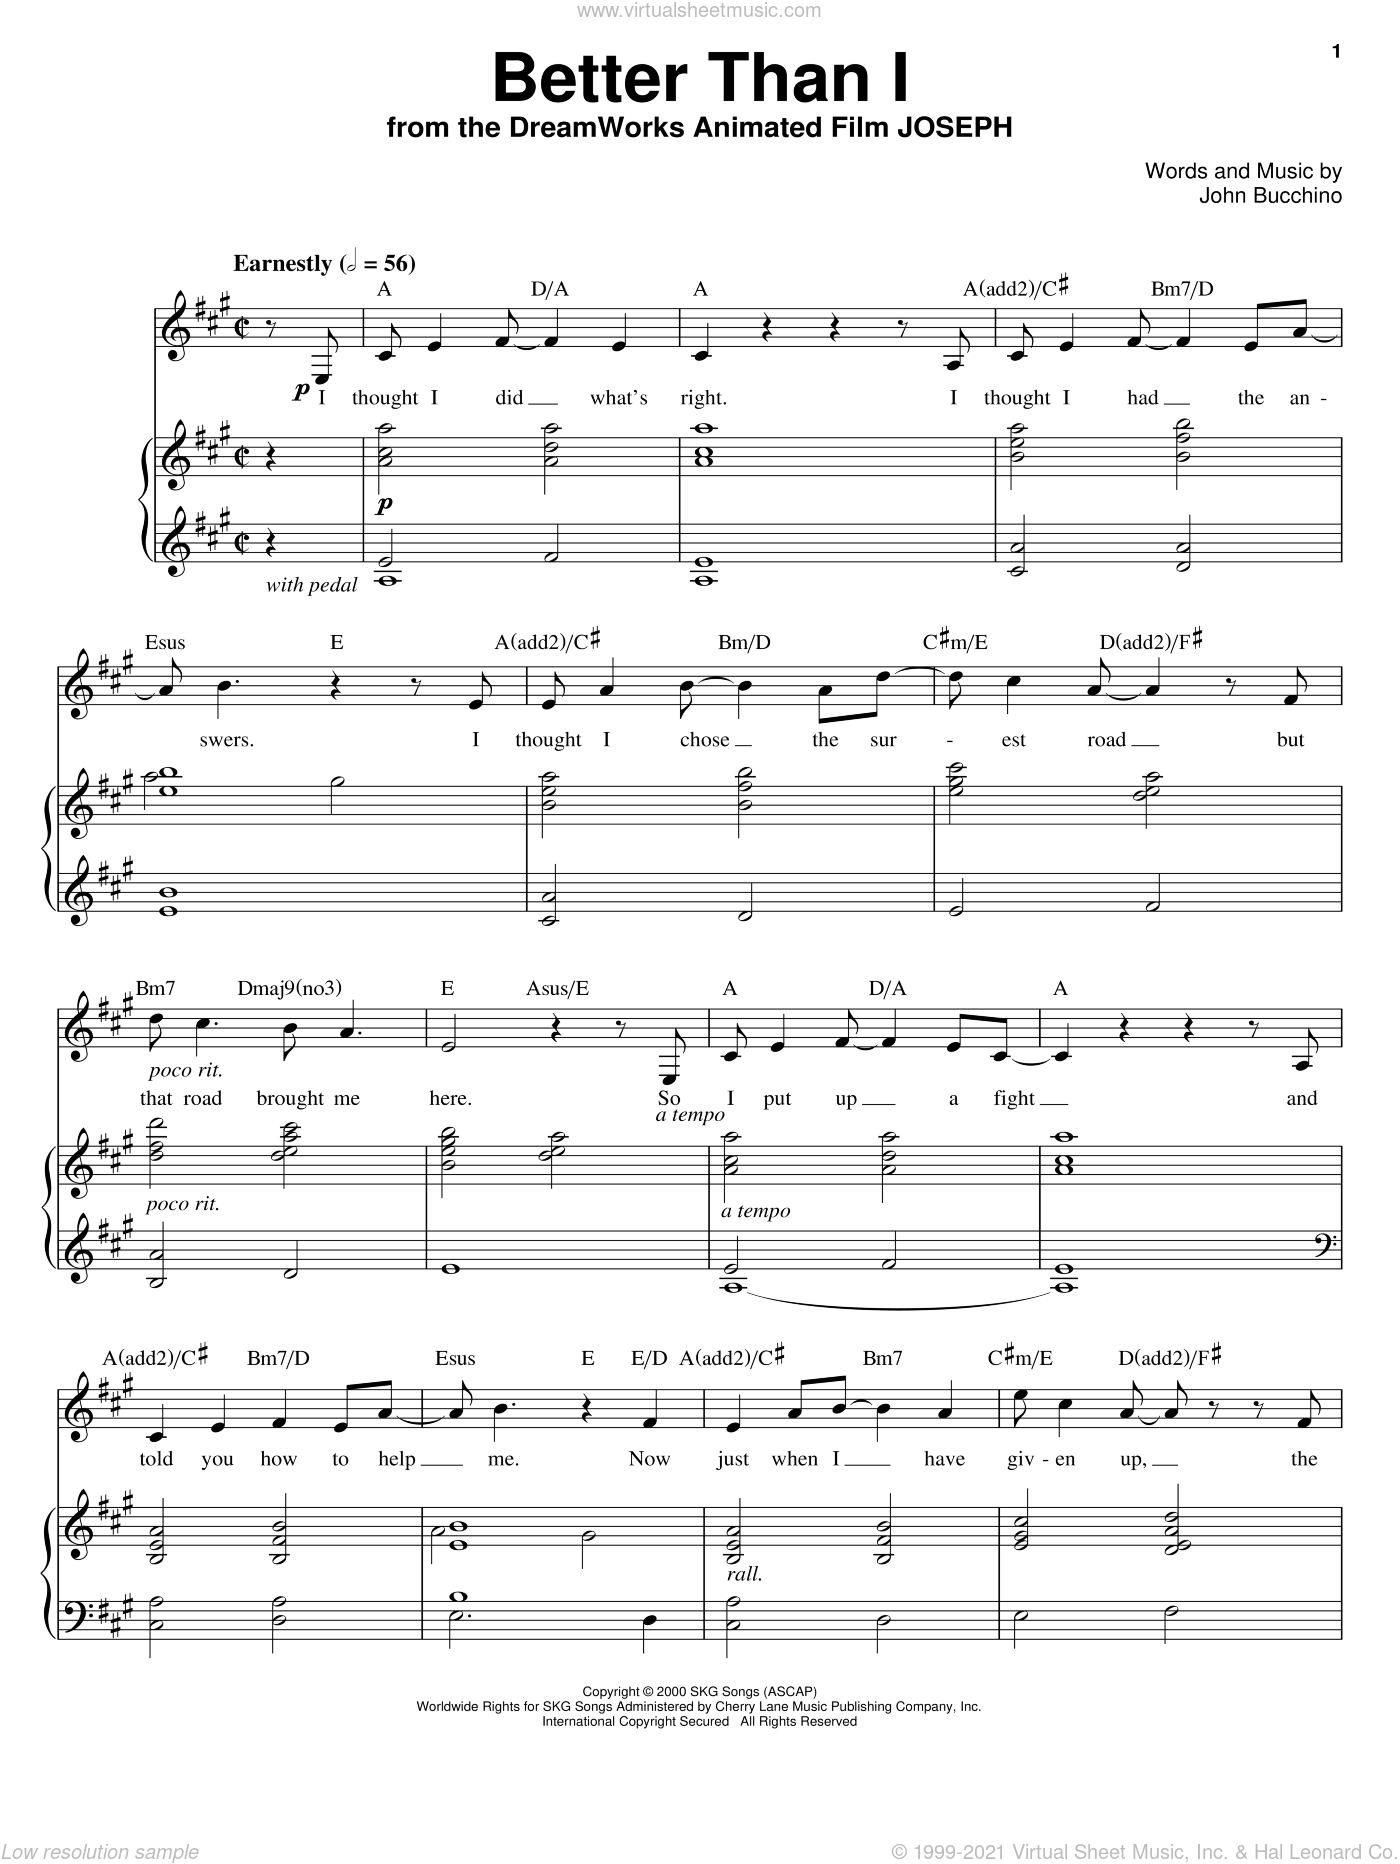 Better Than I sheet music for voice, piano or guitar by John Bucchino, intermediate skill level